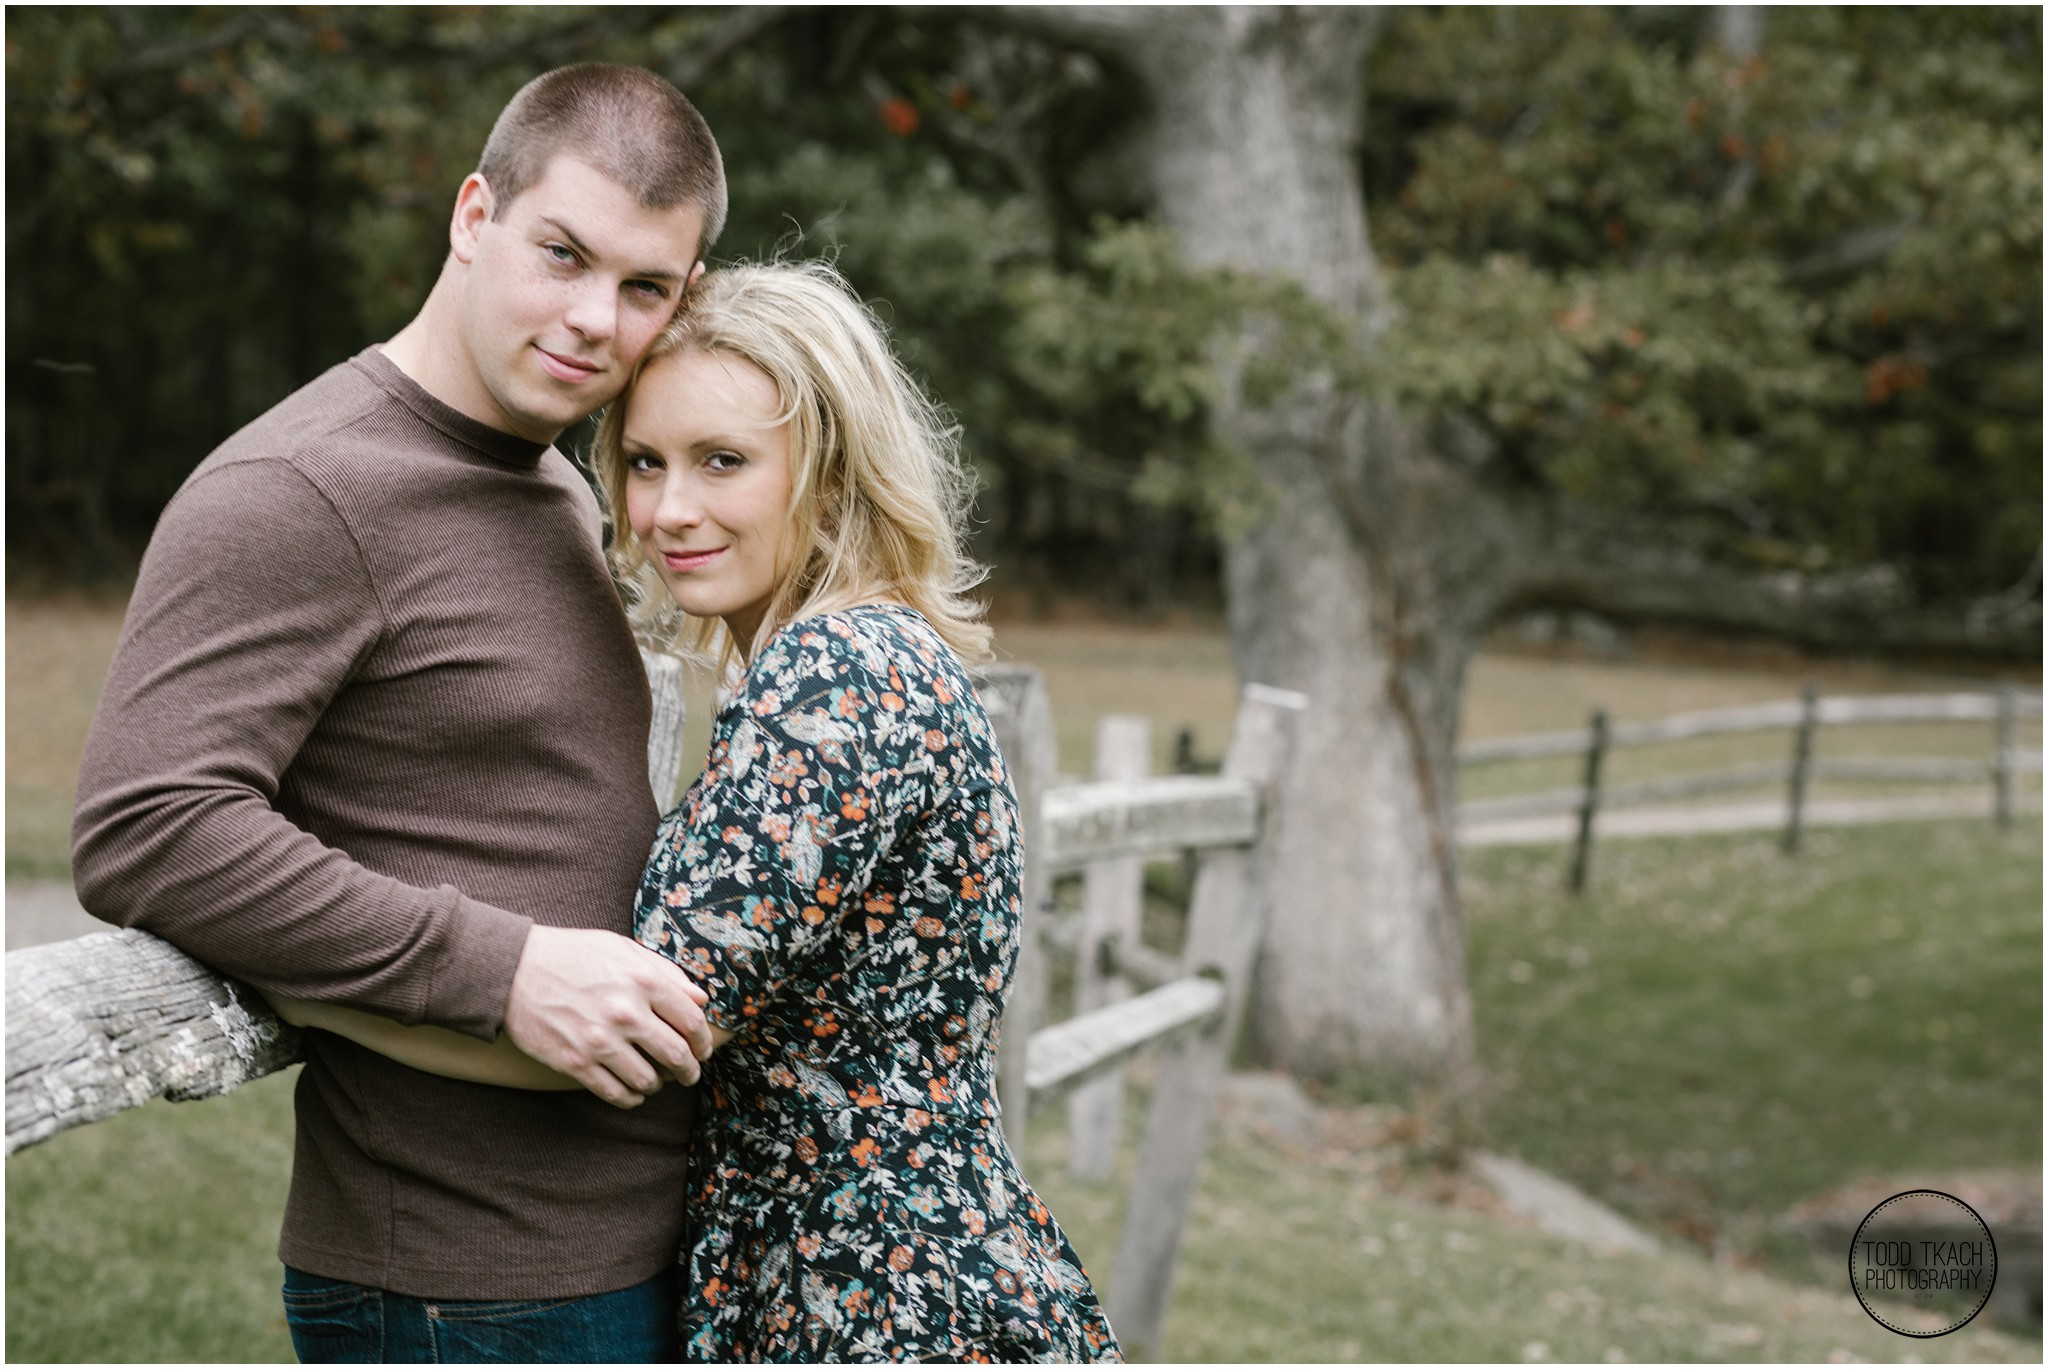 Christie & Scott - Fence Line Portrait